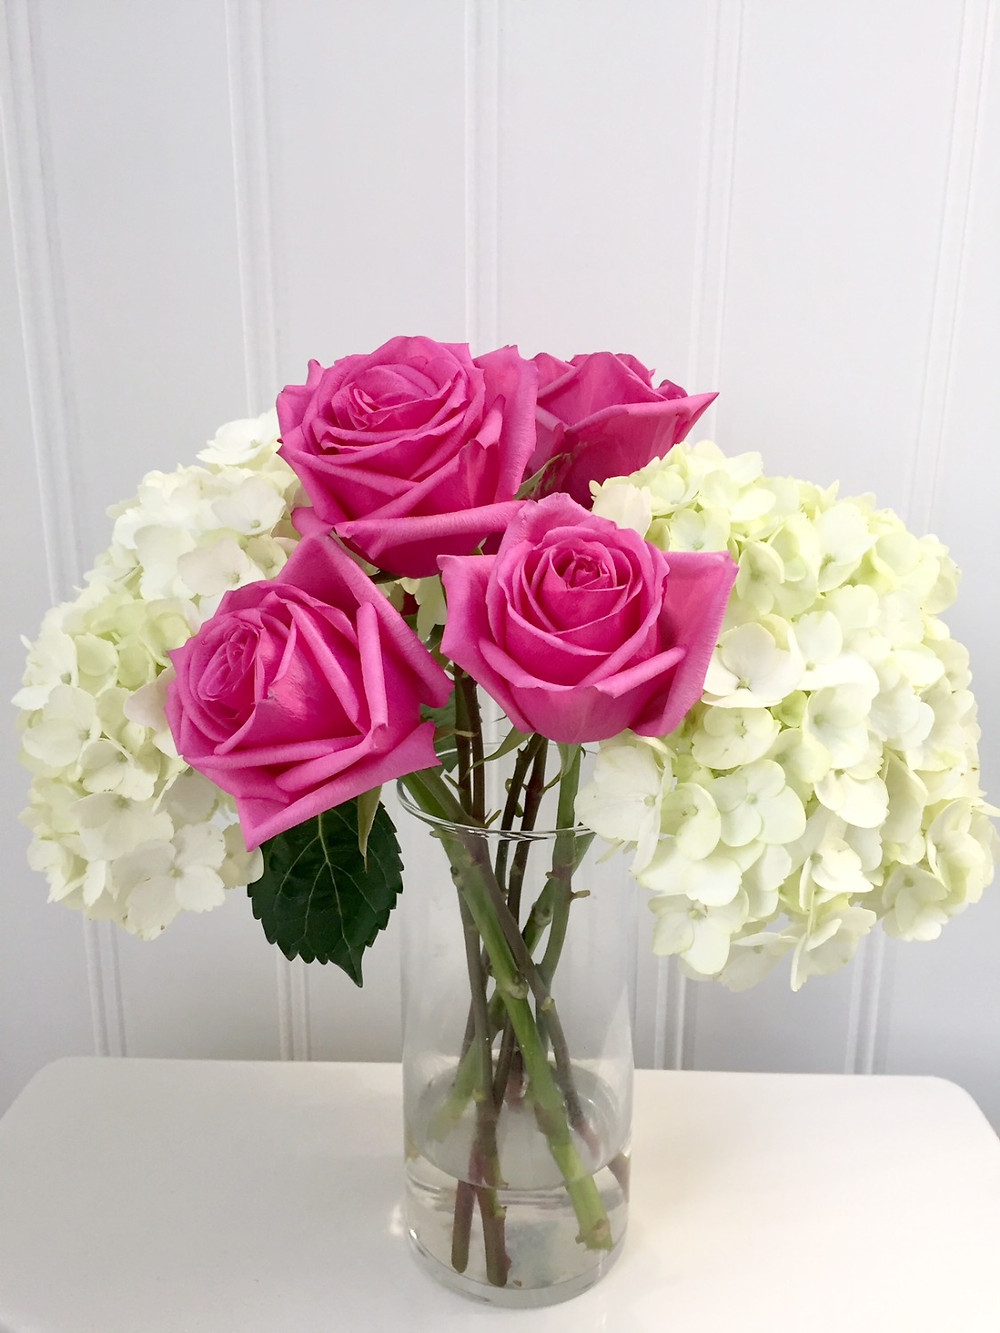 Pink roses with white hydrangeas fresh flowers